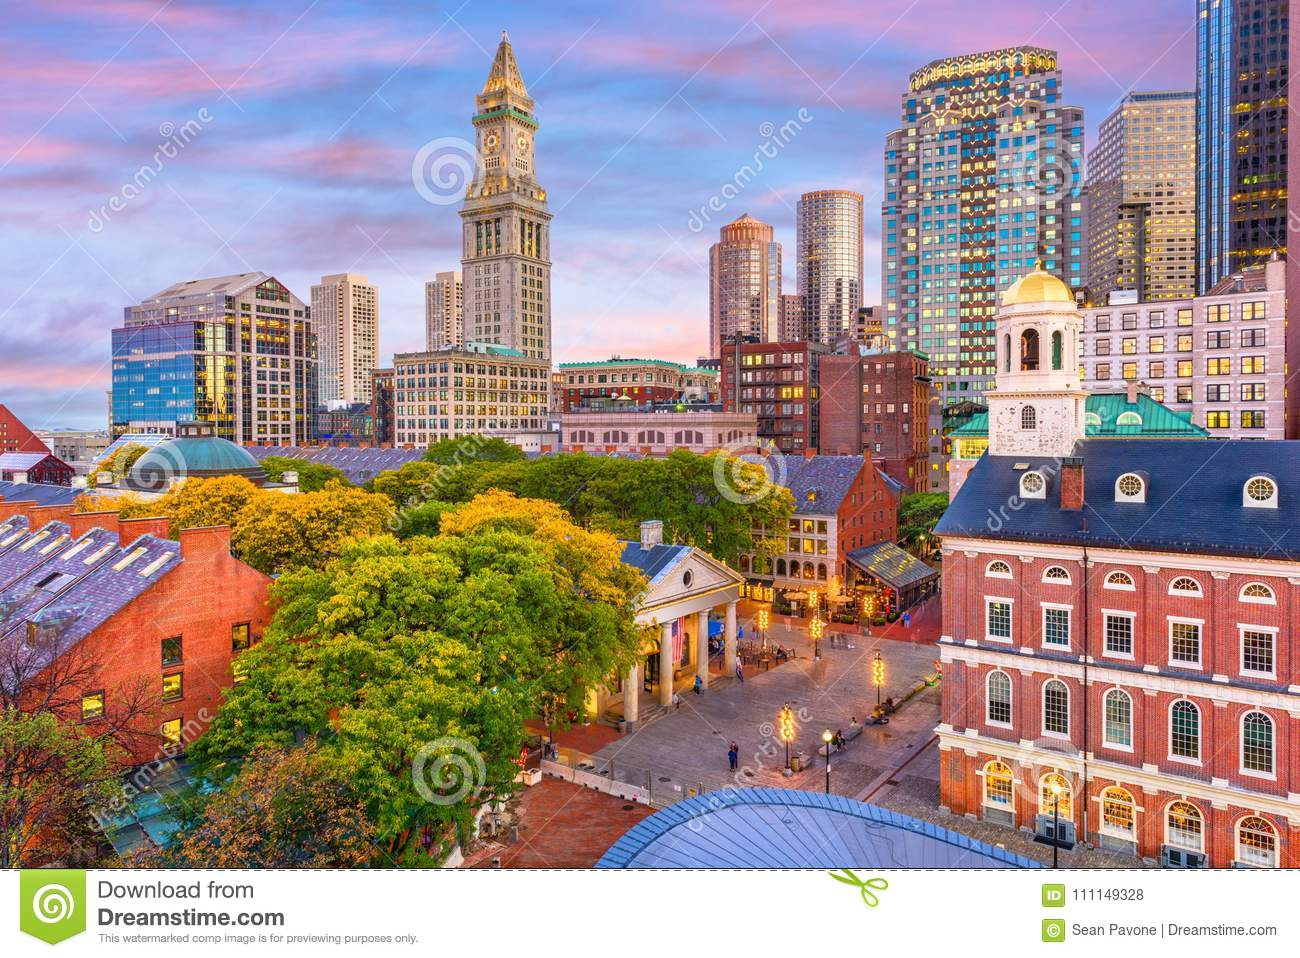 Horizonte de Boston, Massachusetts, los E.E.U.U.